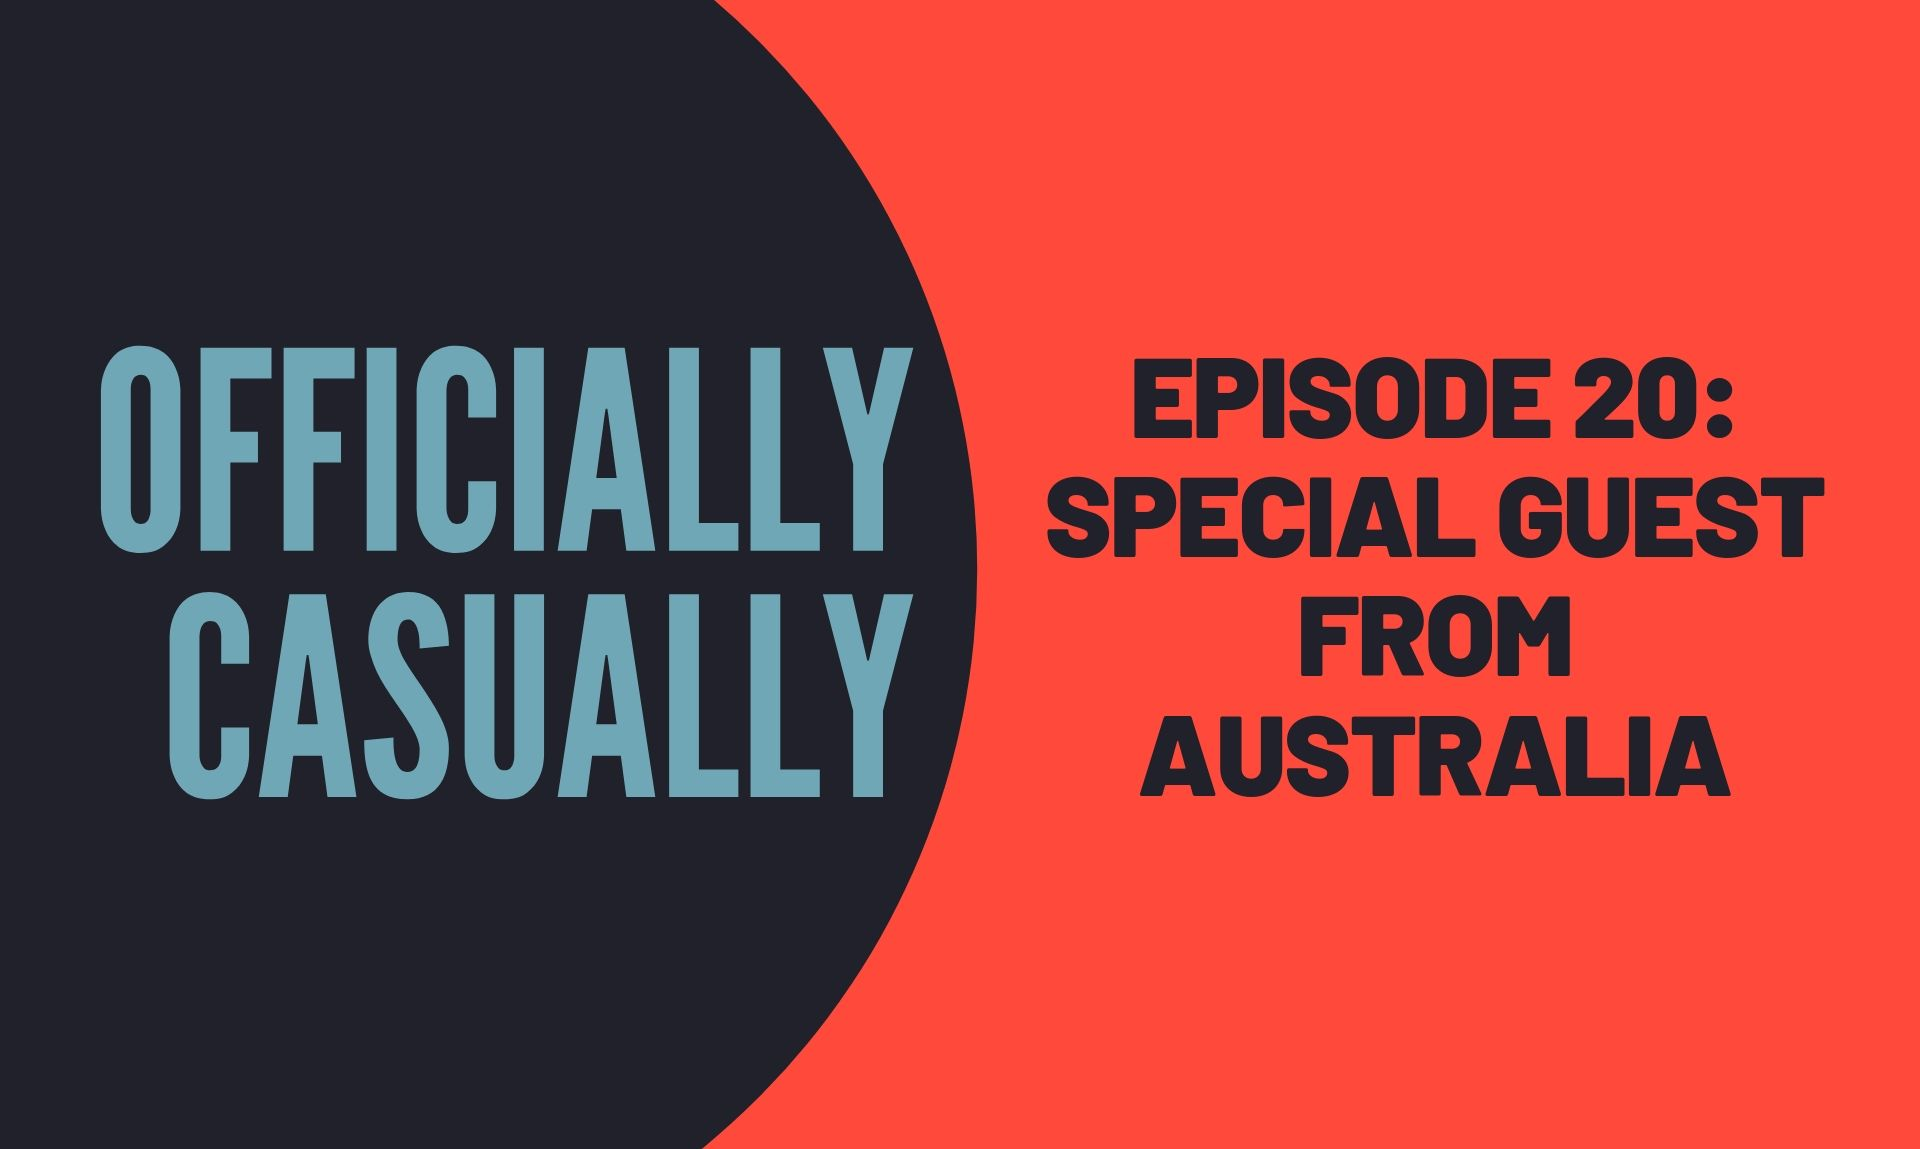 #20 EPISODE - SPECIAL GUEST FROM AUSTRALIA